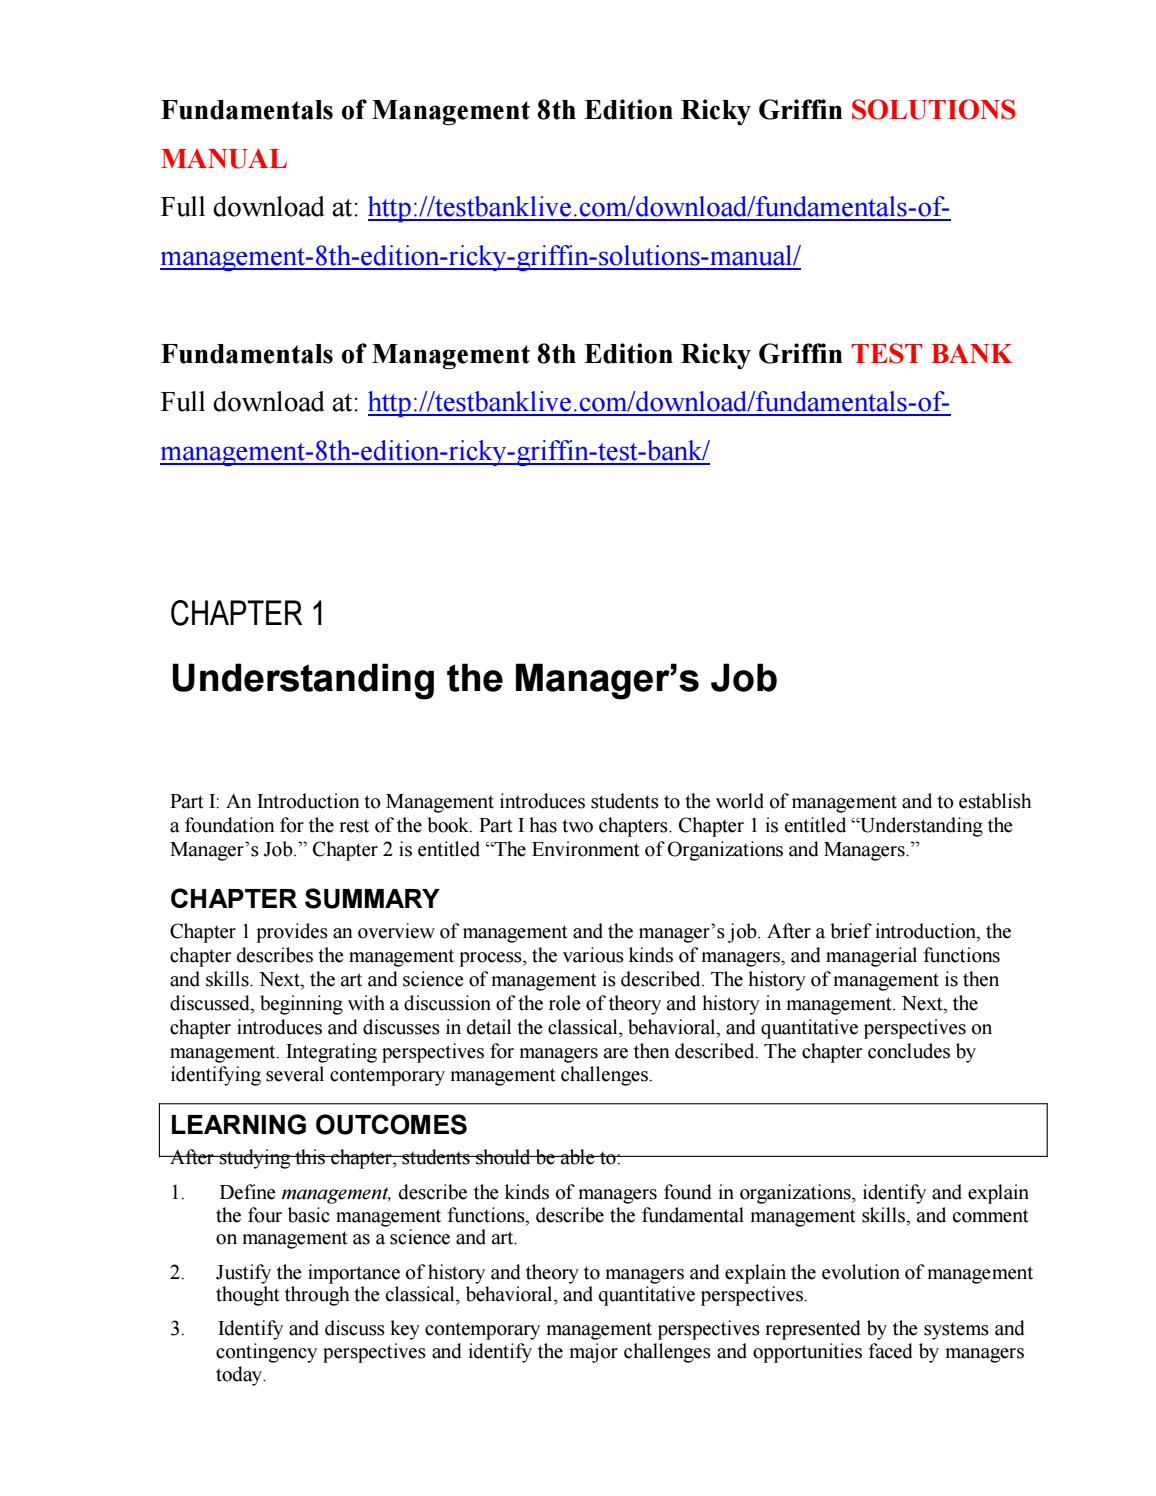 Fundamentals of management 8th edition ricky griffin solutions manual by  glubya - issuu